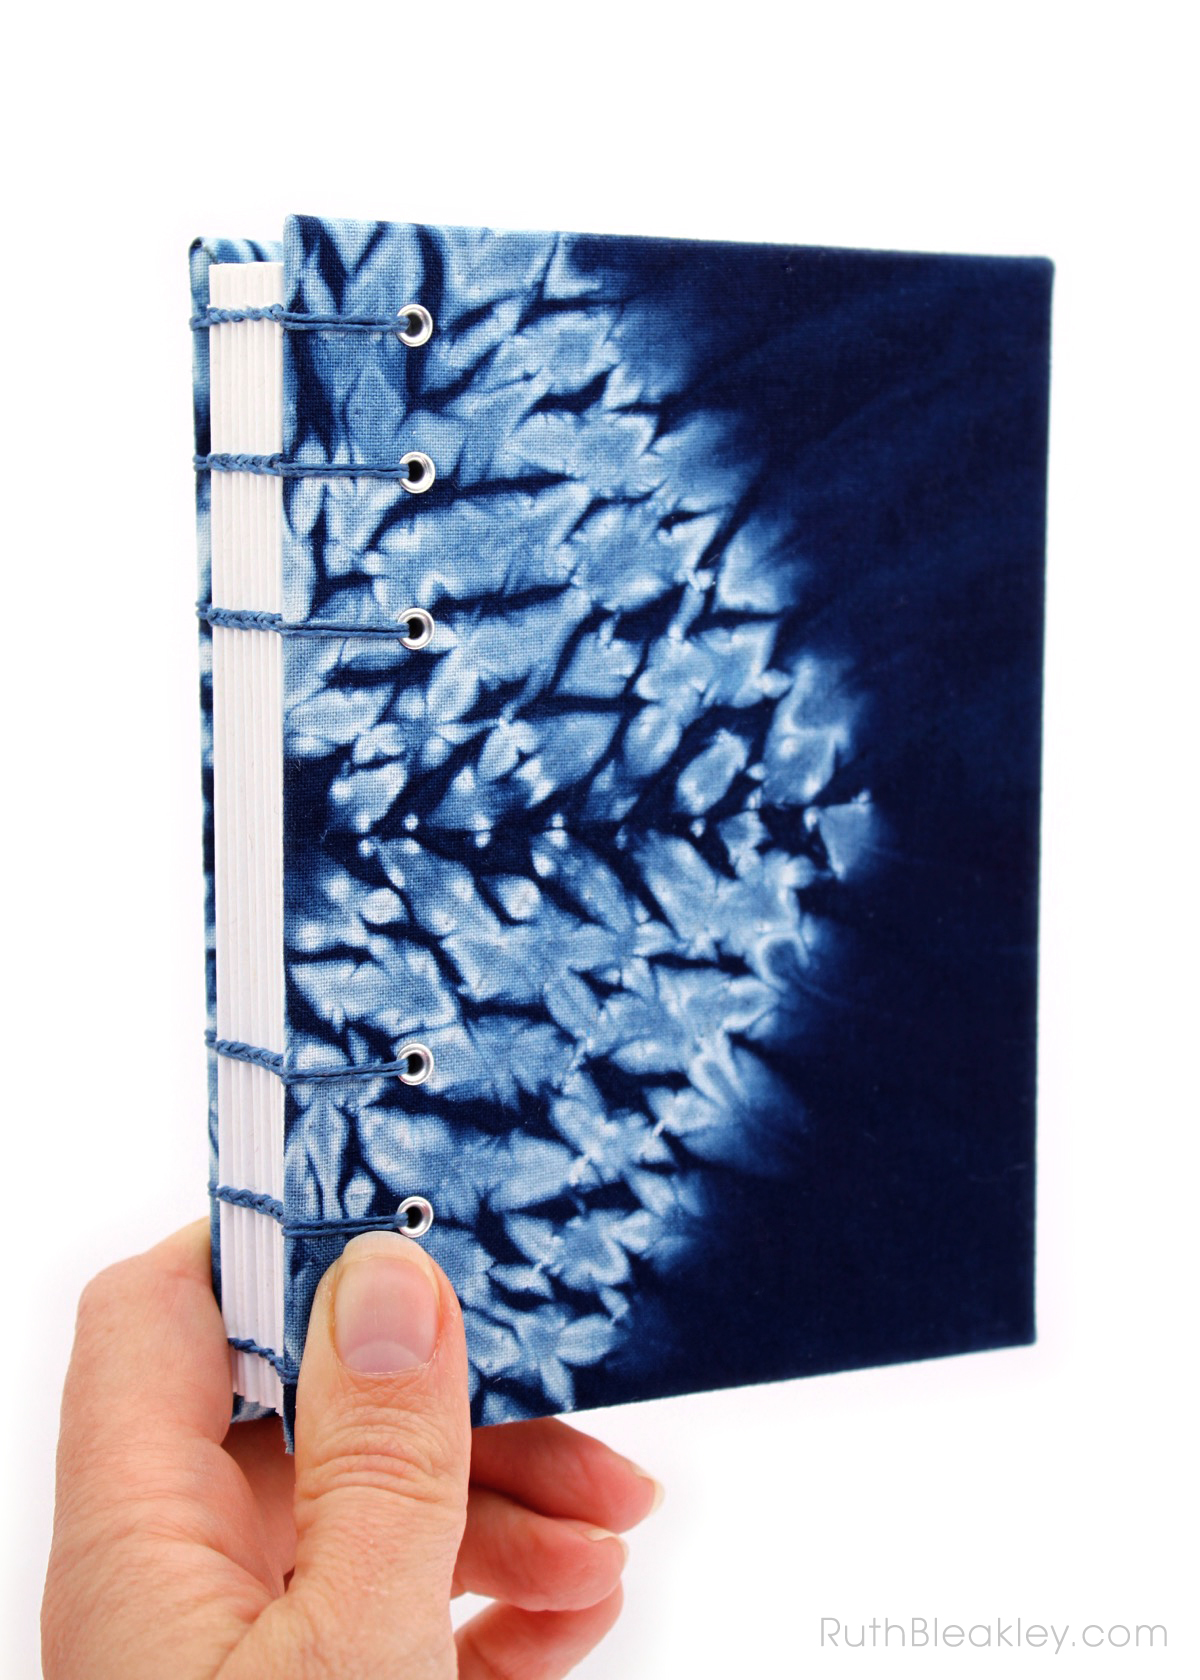 Indigo Shibori Tie Dye Journal - hexagon - Ruth Bleakley - 1